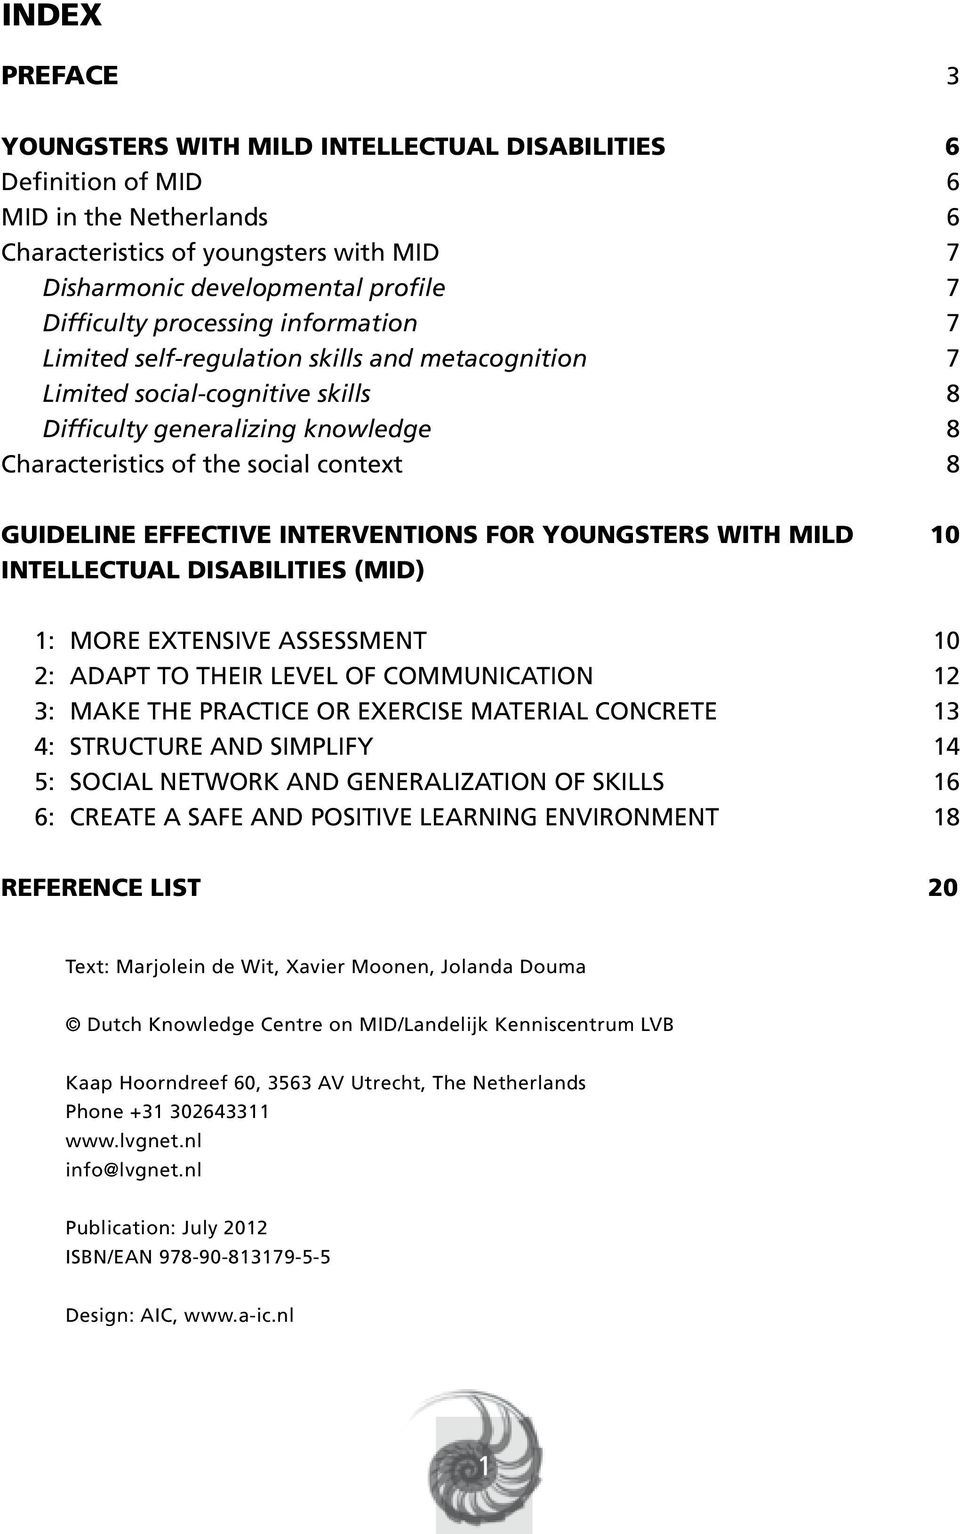 EFFECTIVE INTERVENTIONS FOR YOUNGSTERS WITH MILD 10 INTELLECTUAL DISABILITIES (MID) 1: MORE EXTENSIVE ASSESSMENT 10 2: ADAPT TO THEIR LEVEL OF COMMUNICATION 12 3: MAKE THE PRACTICE OR EXERCISE